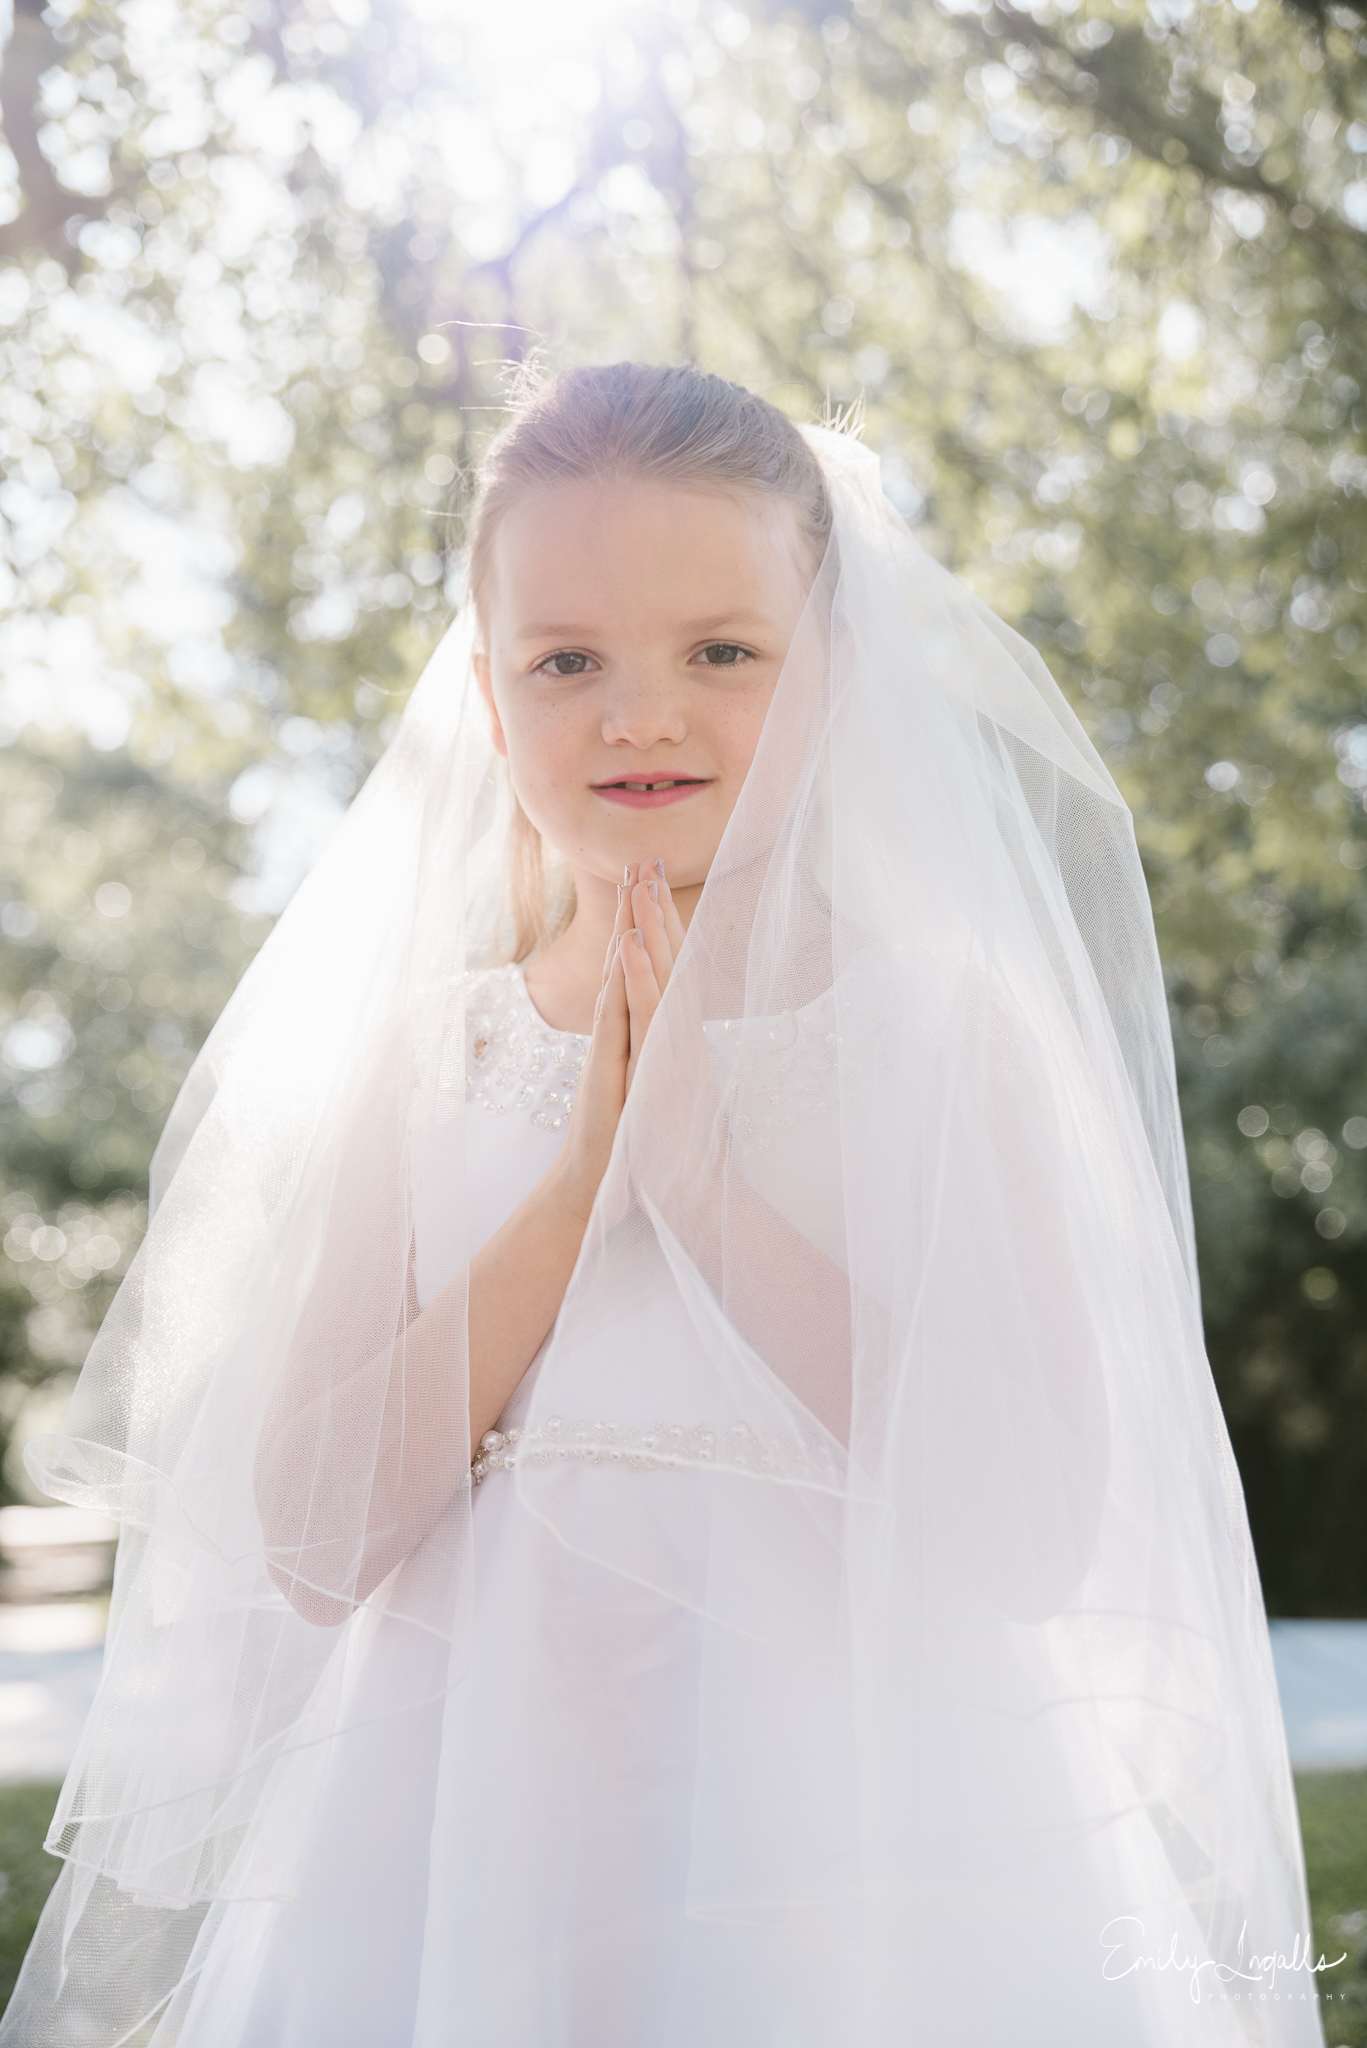 First Communion Catholic Children's Photographer_Round Rock Photographer_Emily Ingalls Photography_Austin Photographer_Pflugerville Photographer_Georgetown Photographer.jpg